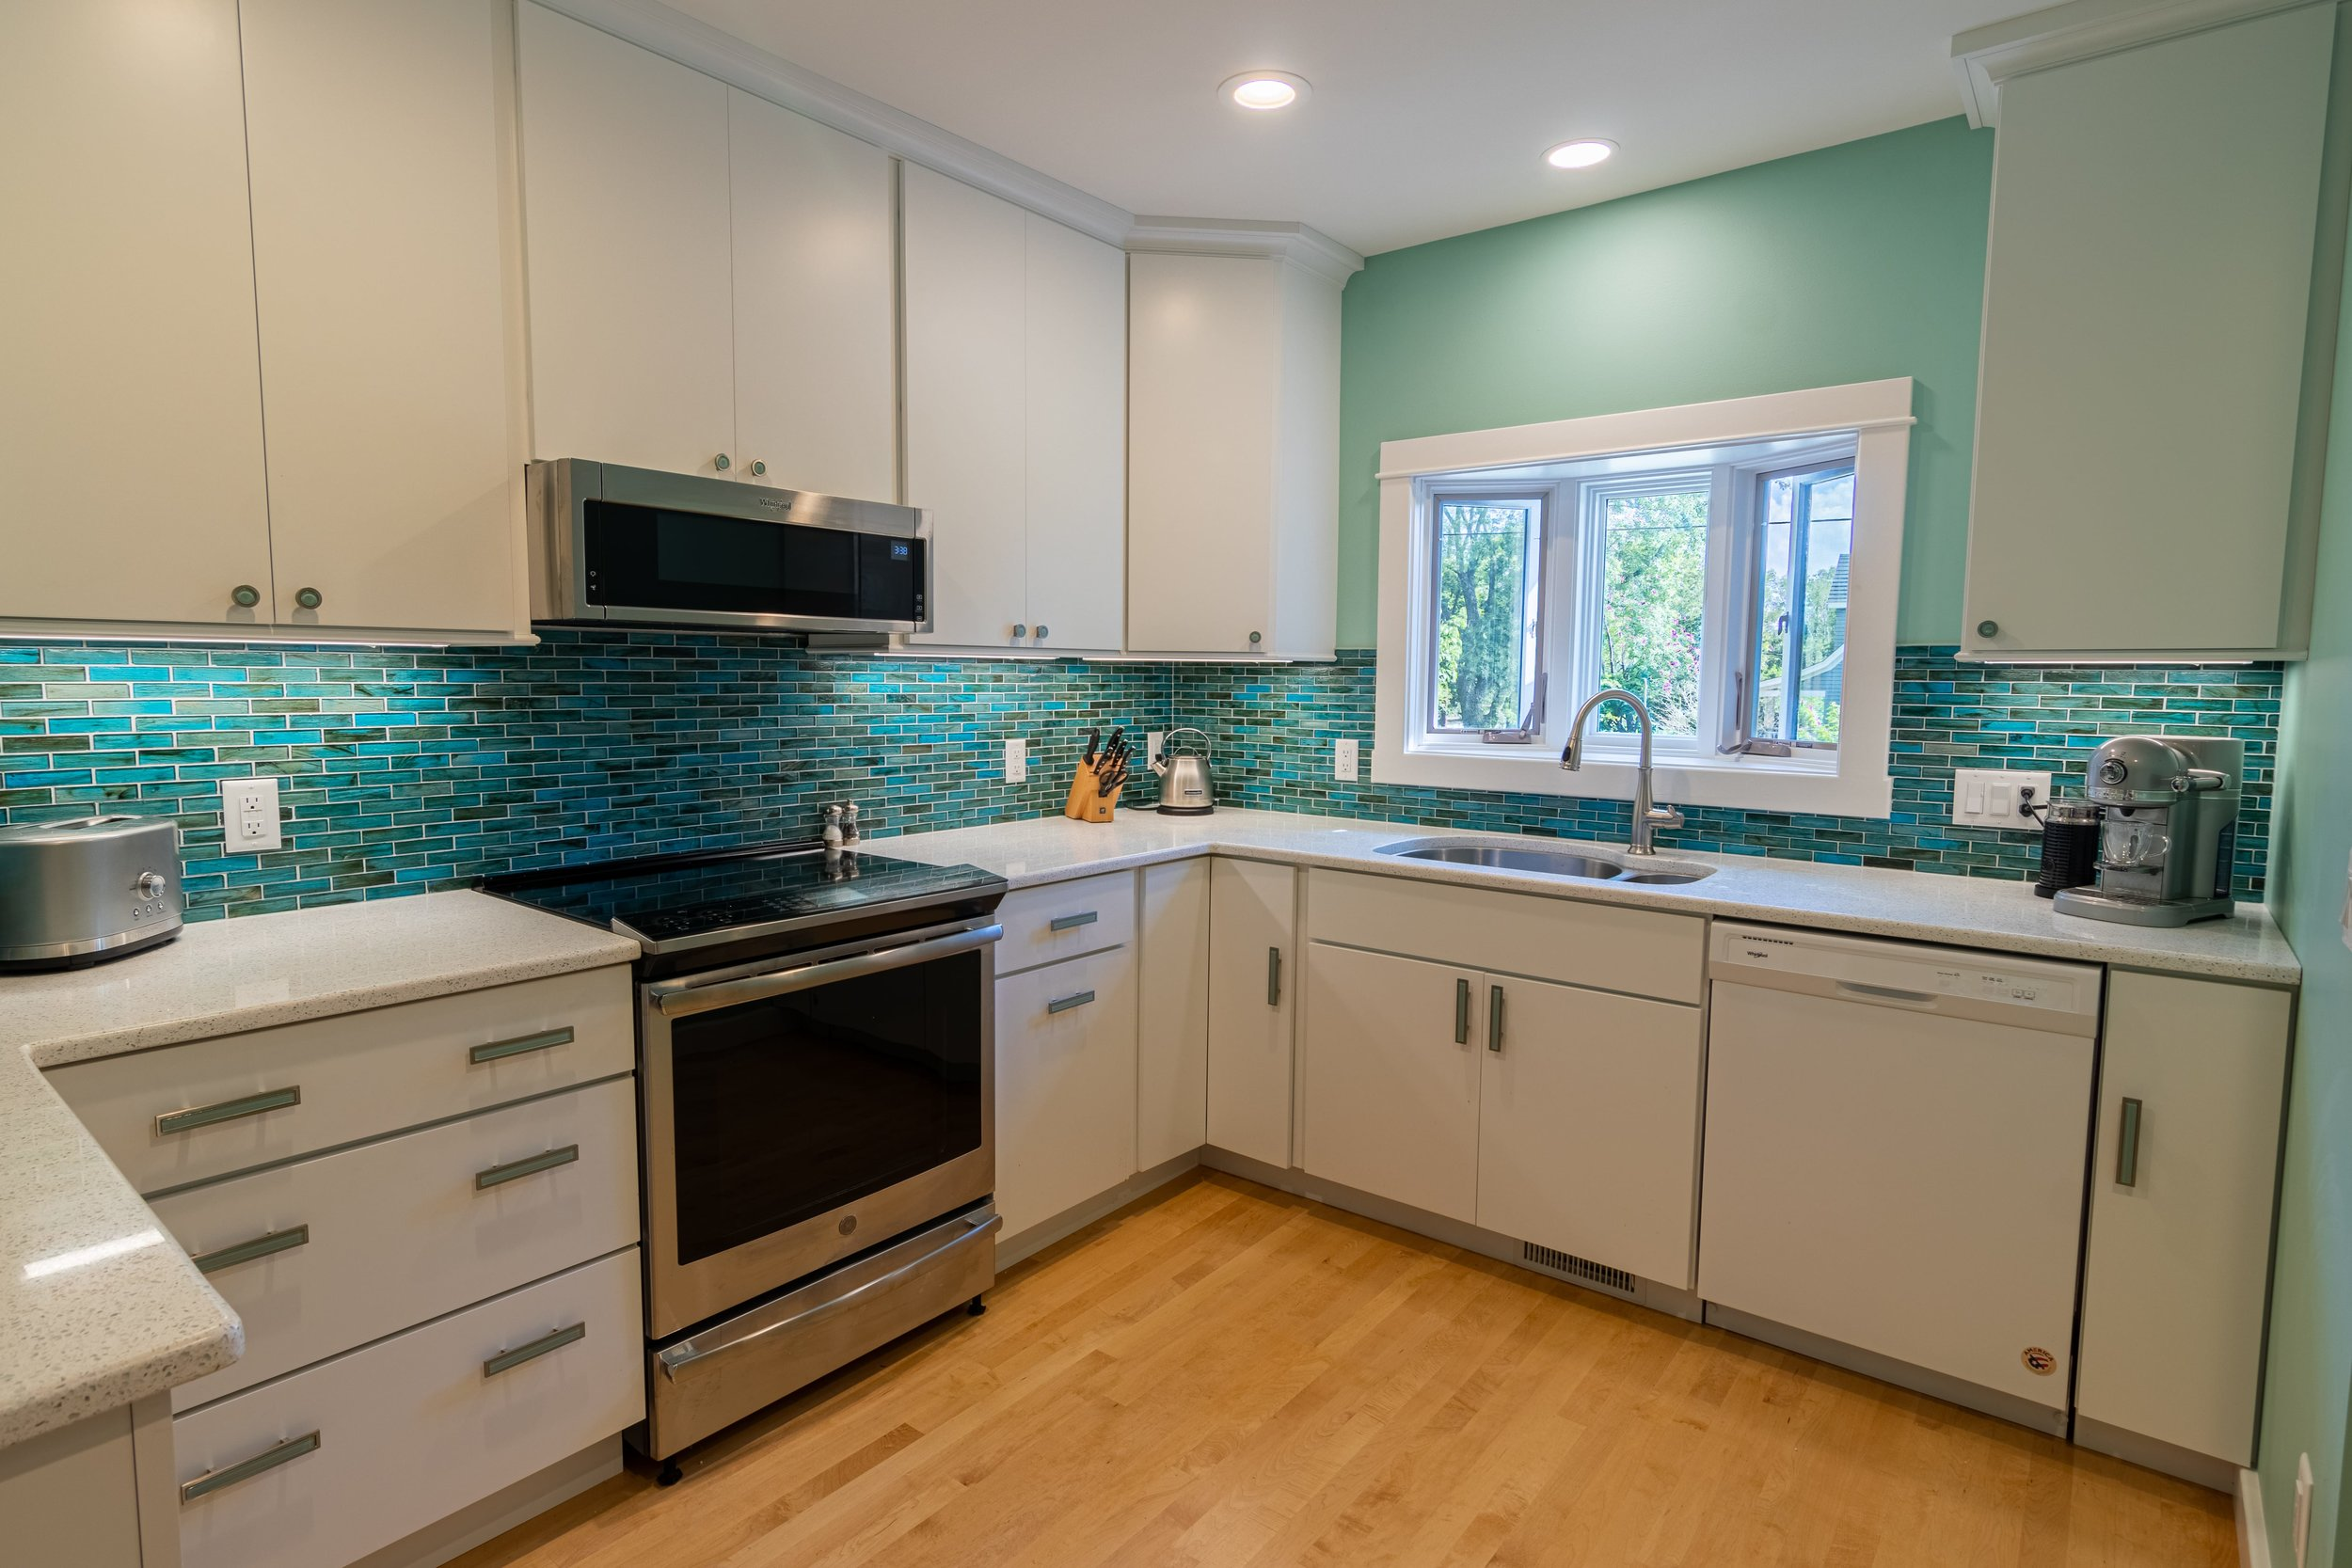 kitchen-remodel-renovate-madison-wi-1.jpg